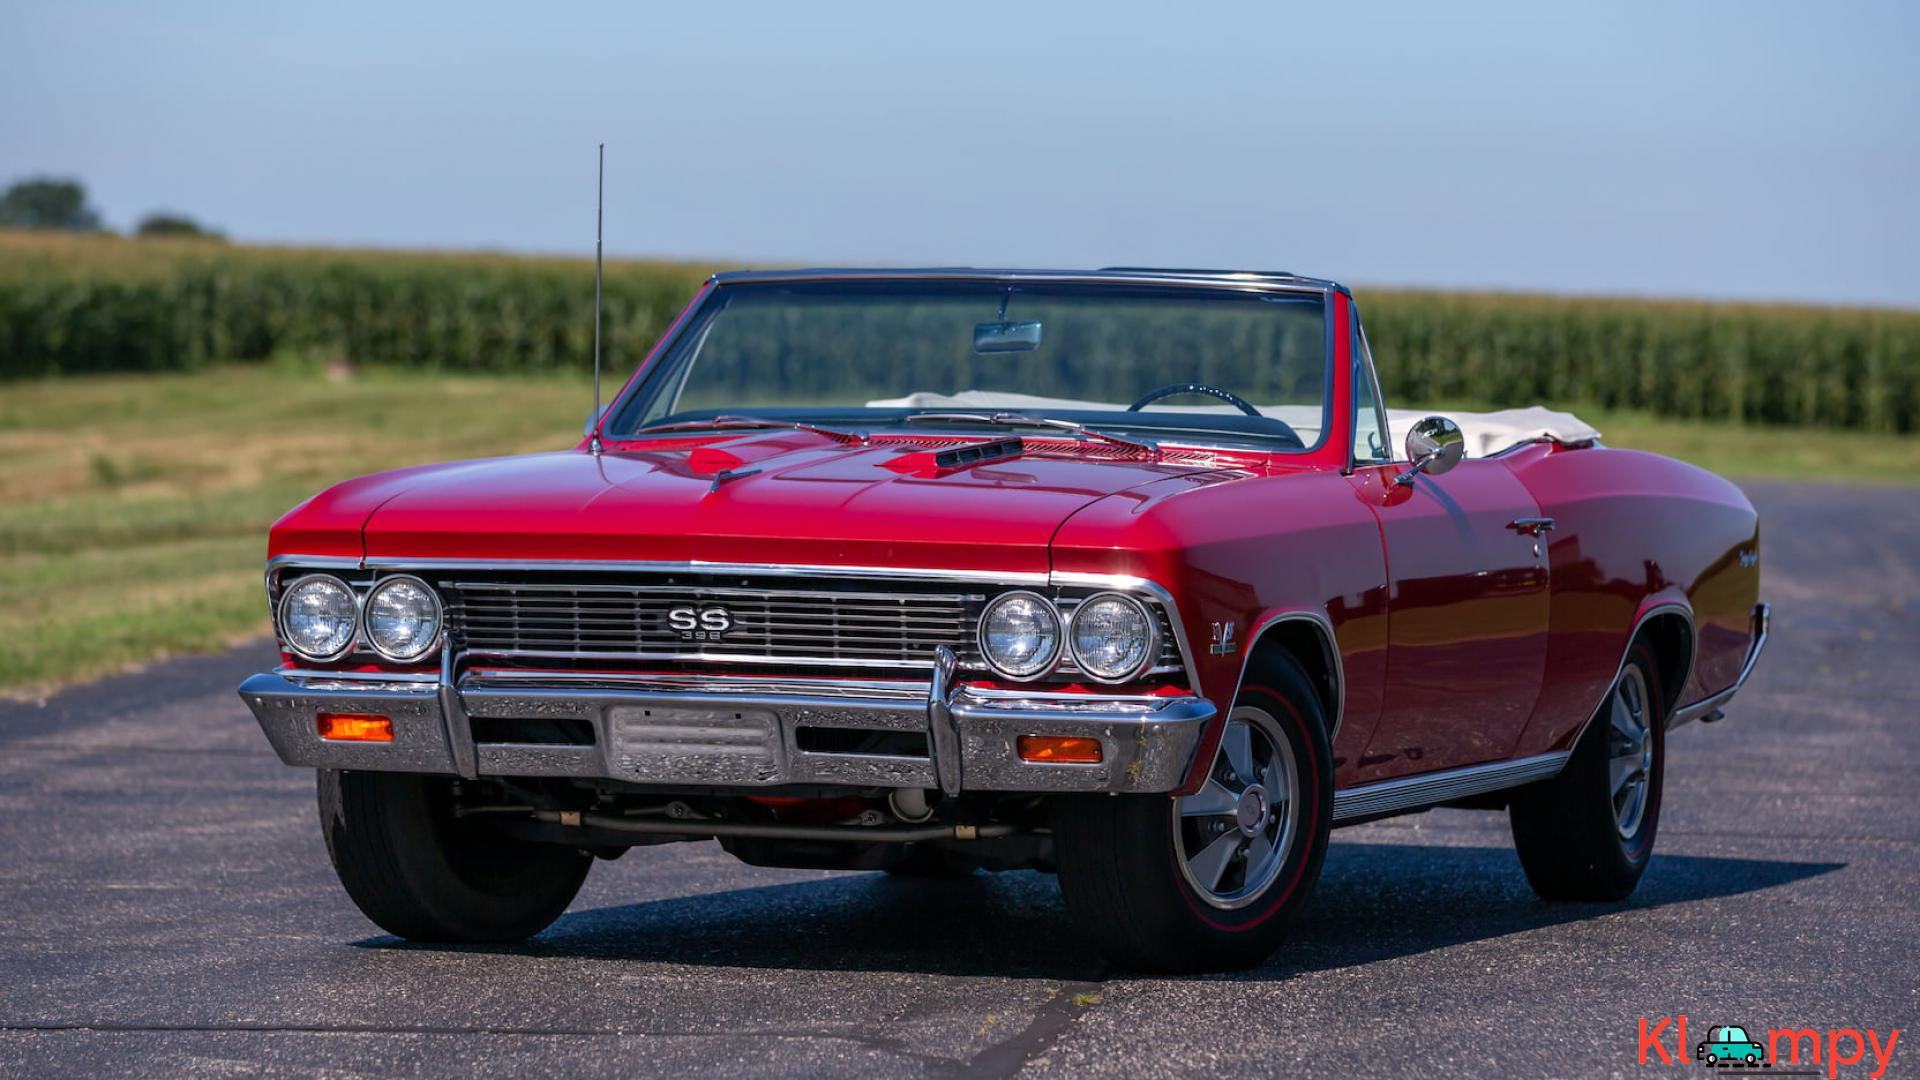 1966 Chevrolet Chevelle SS Convertible - 2/15